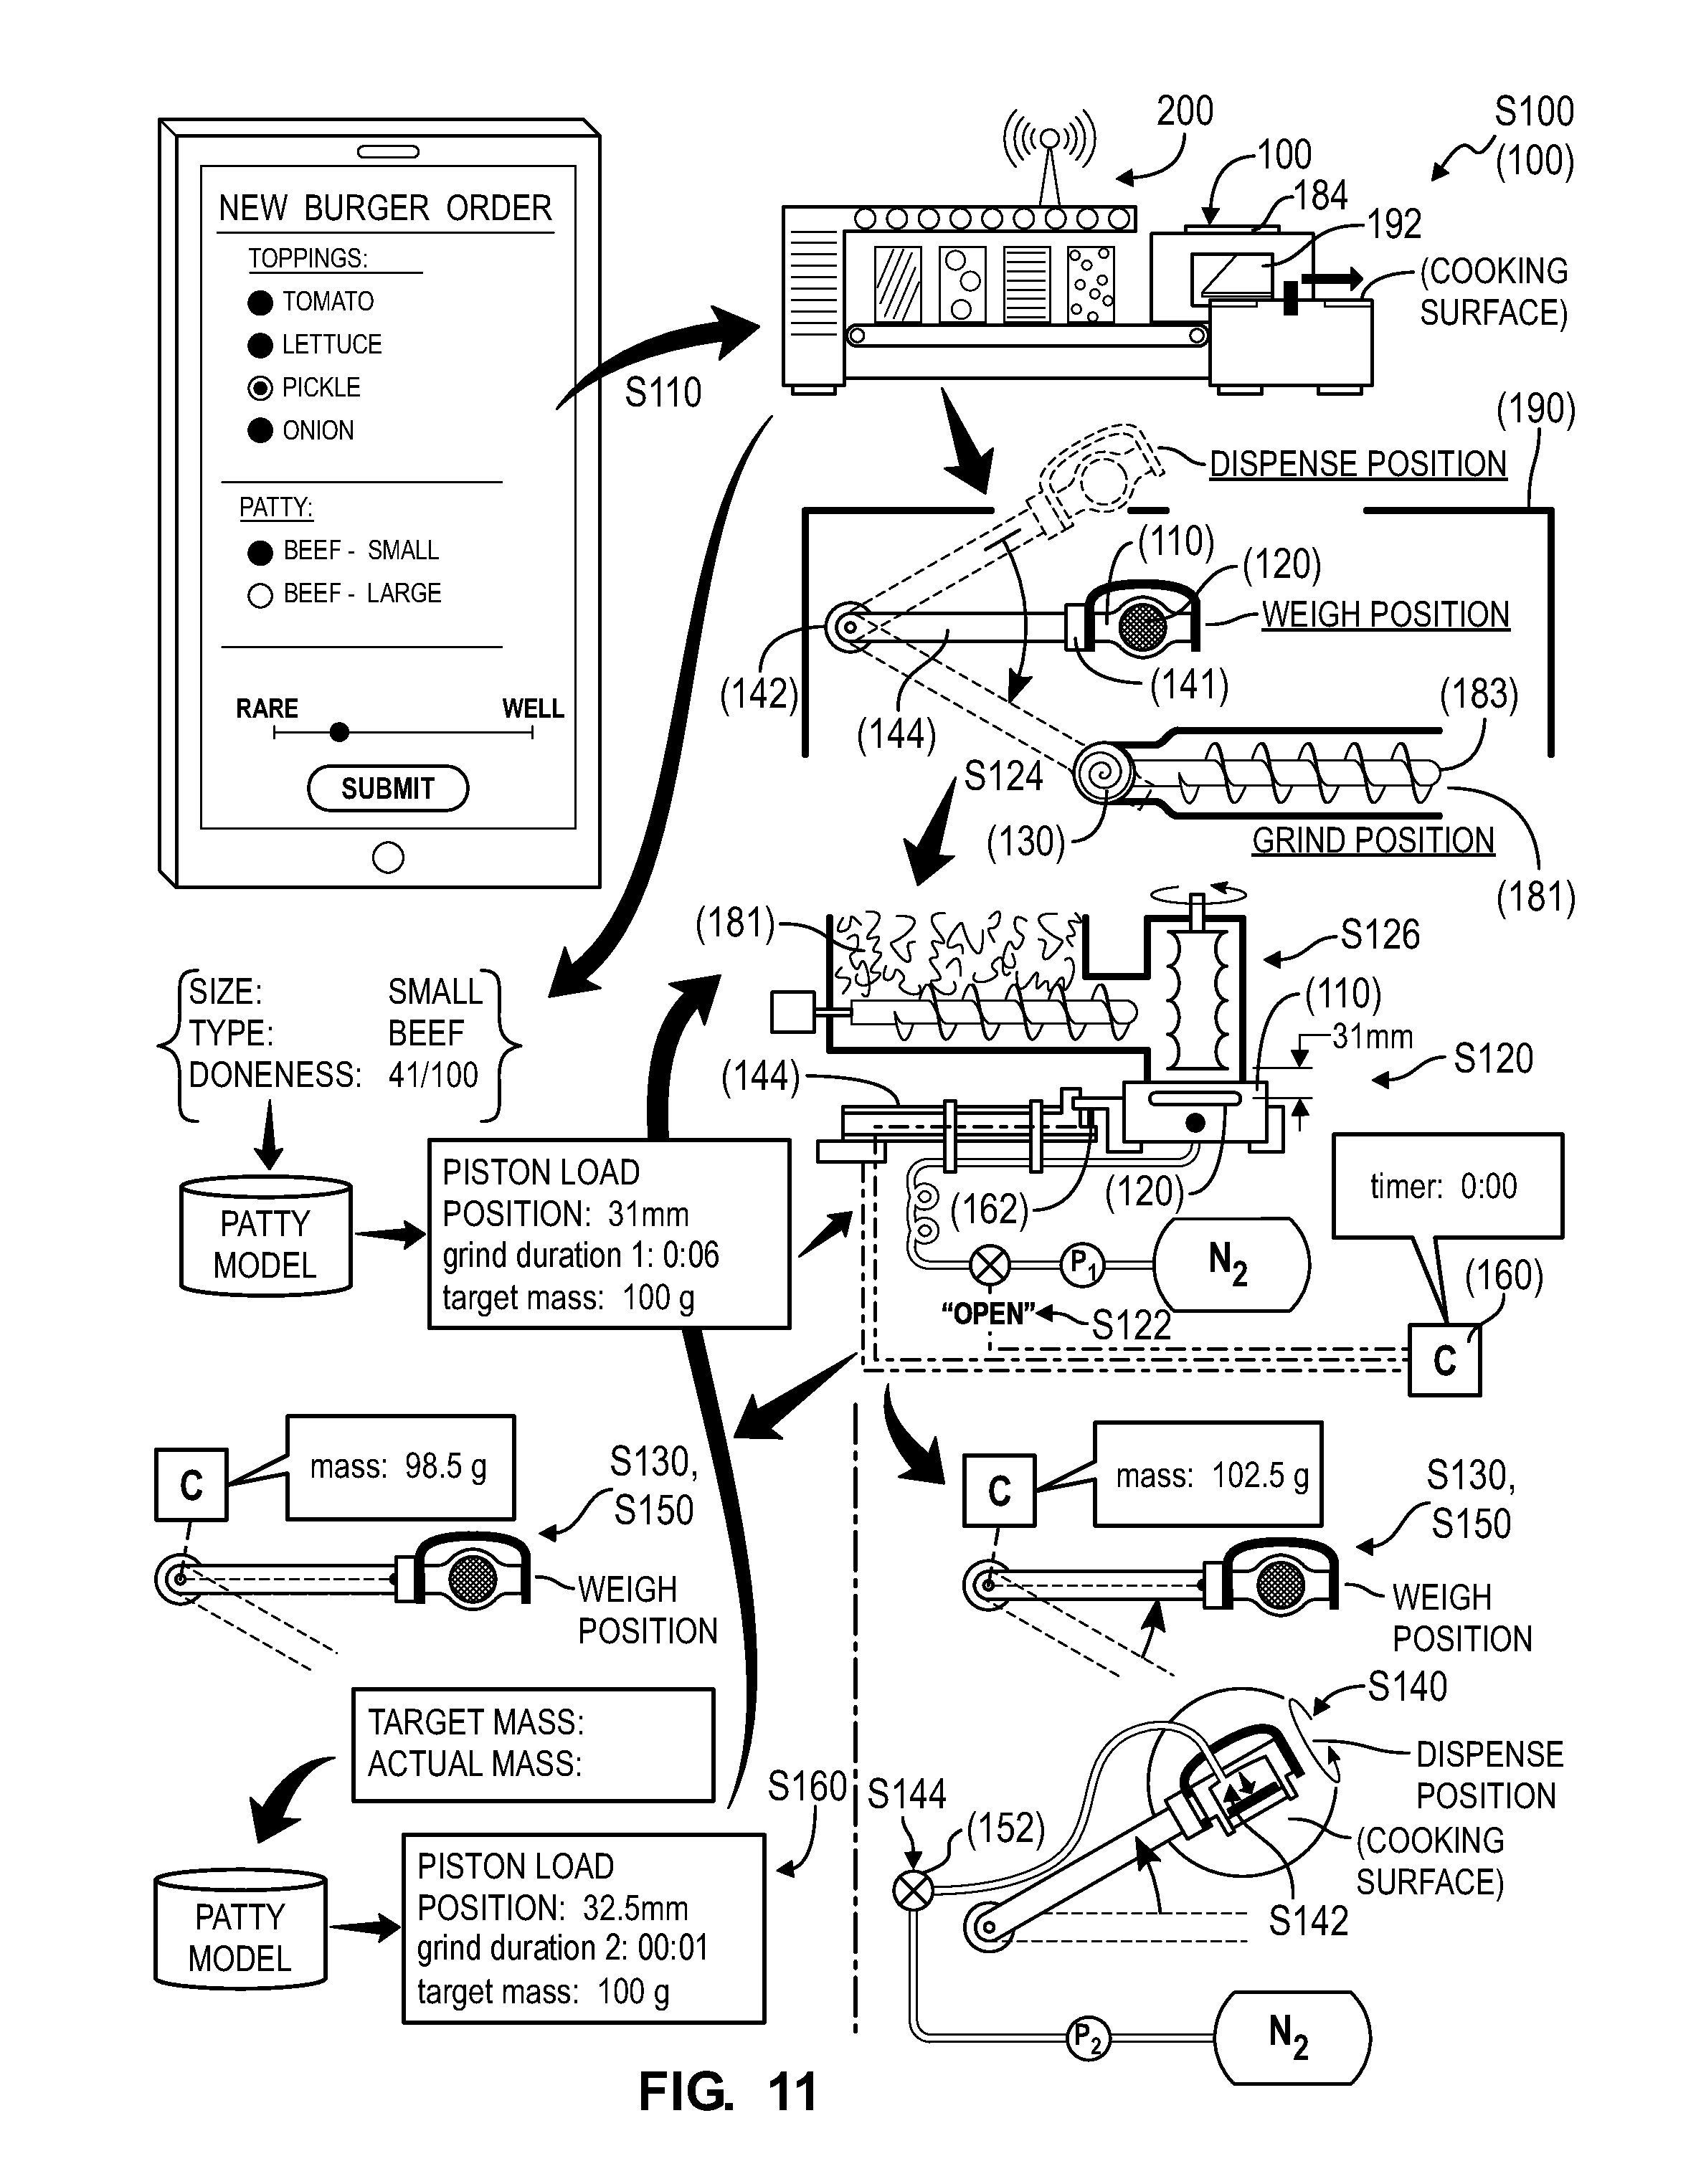 An image of Momentum Machines patent